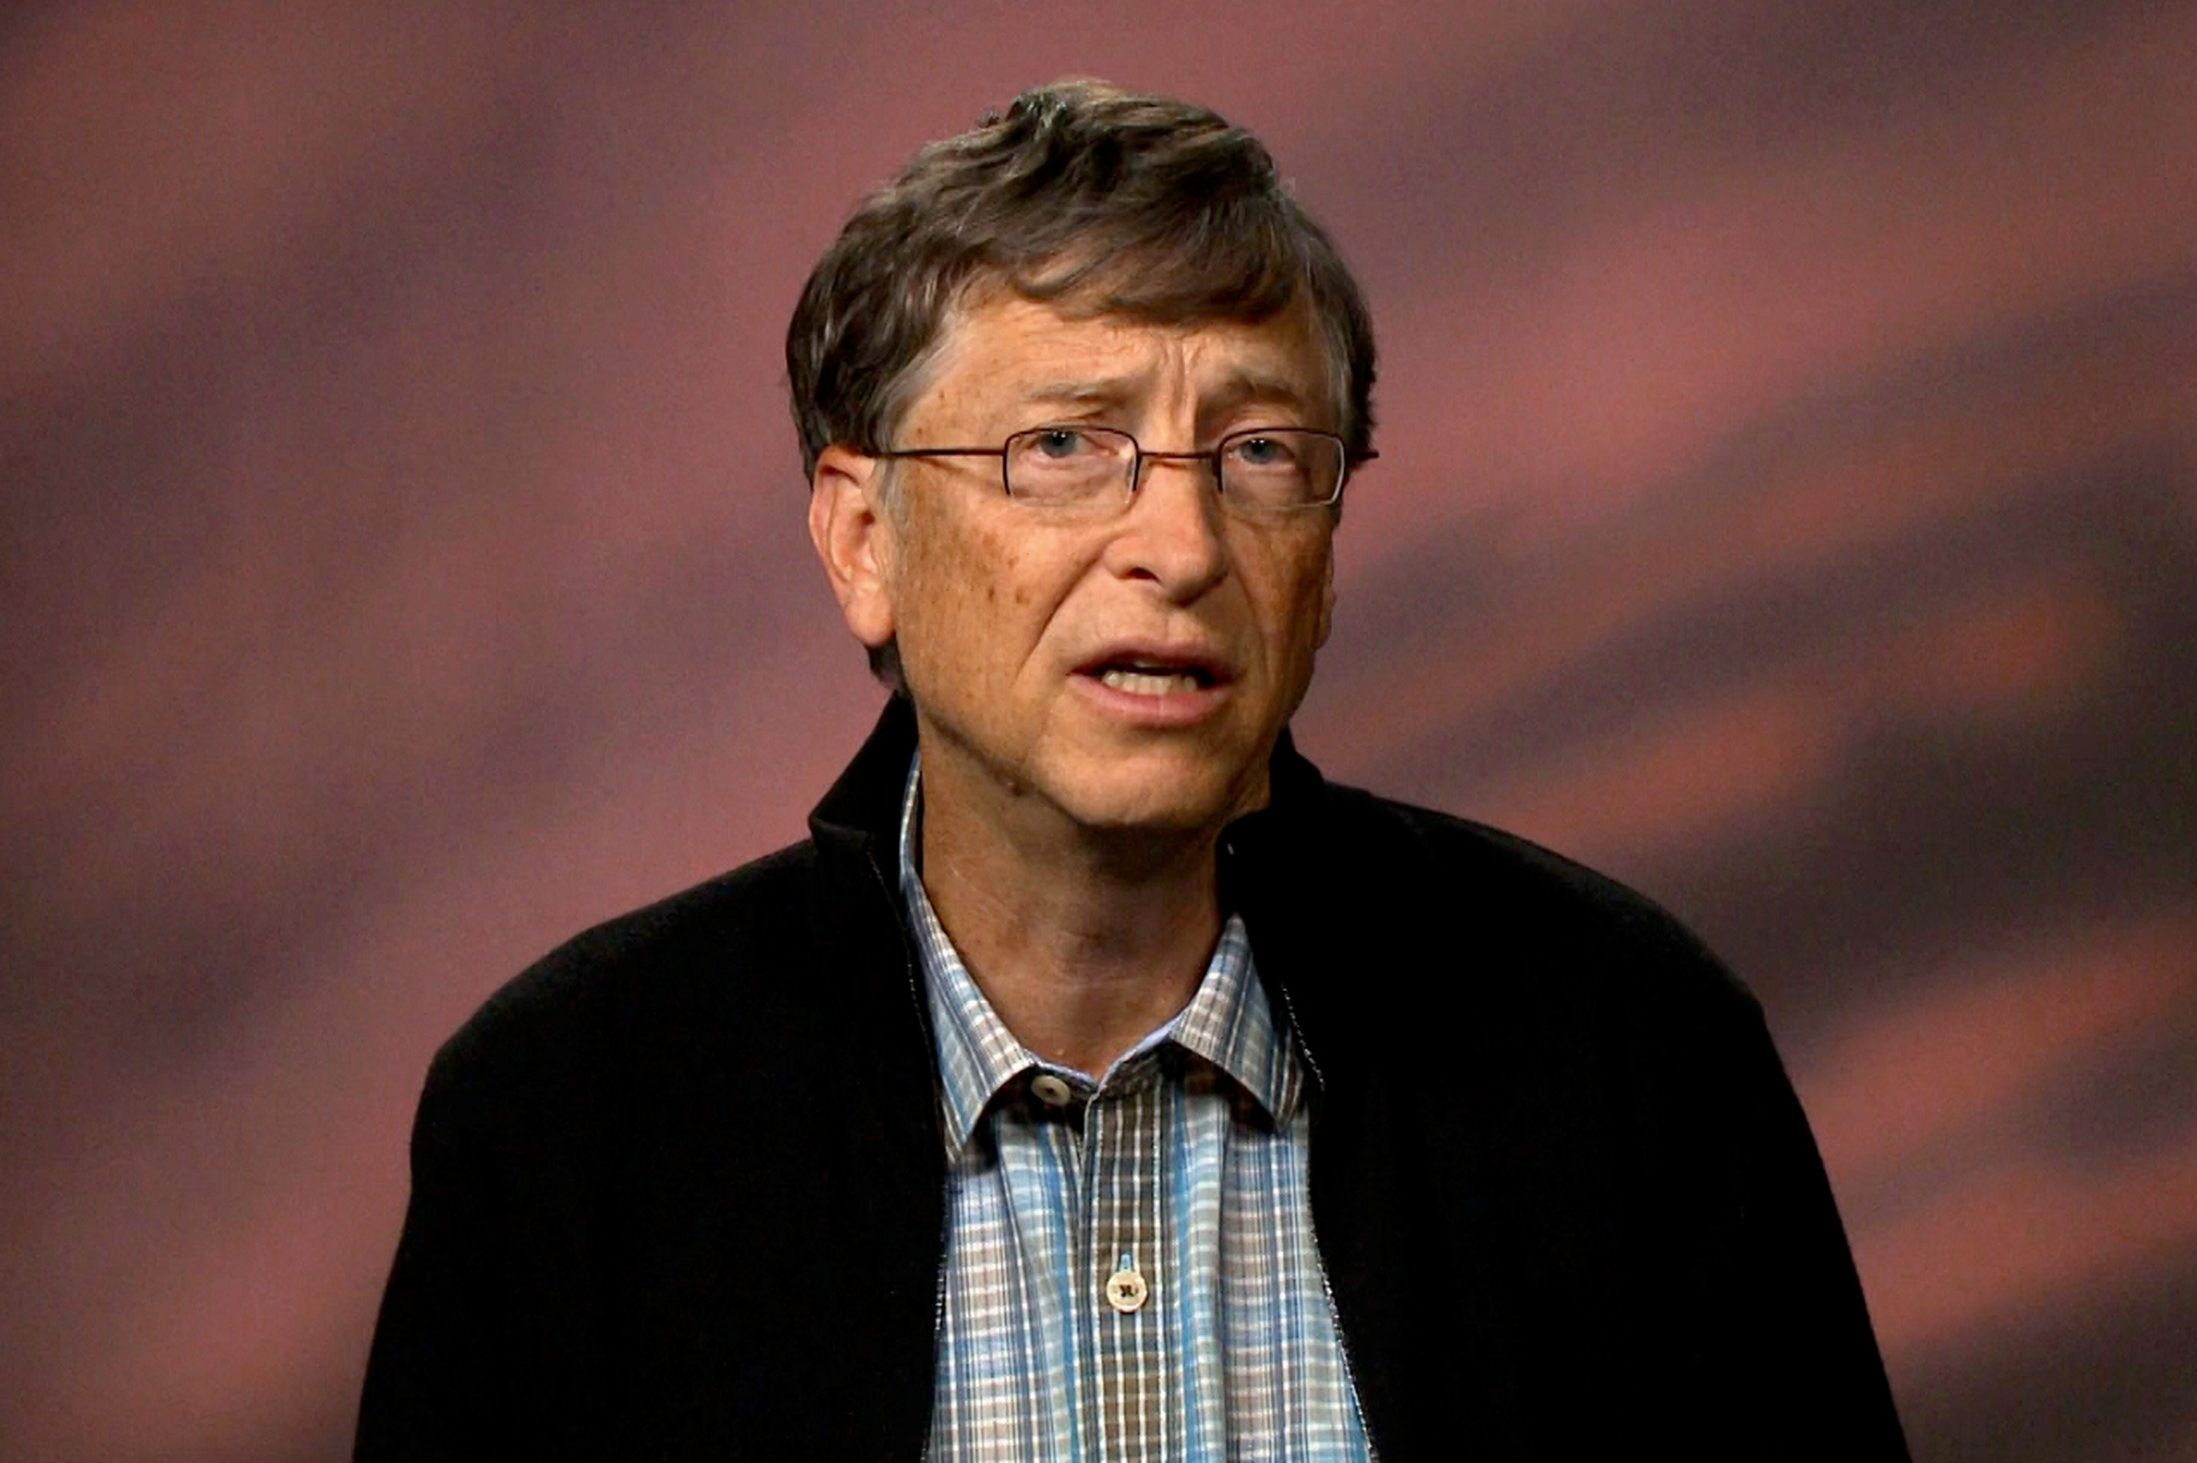 Bill gates hd wallpapers pictures hd wallpapers - Bill gates hd wallpaper ...